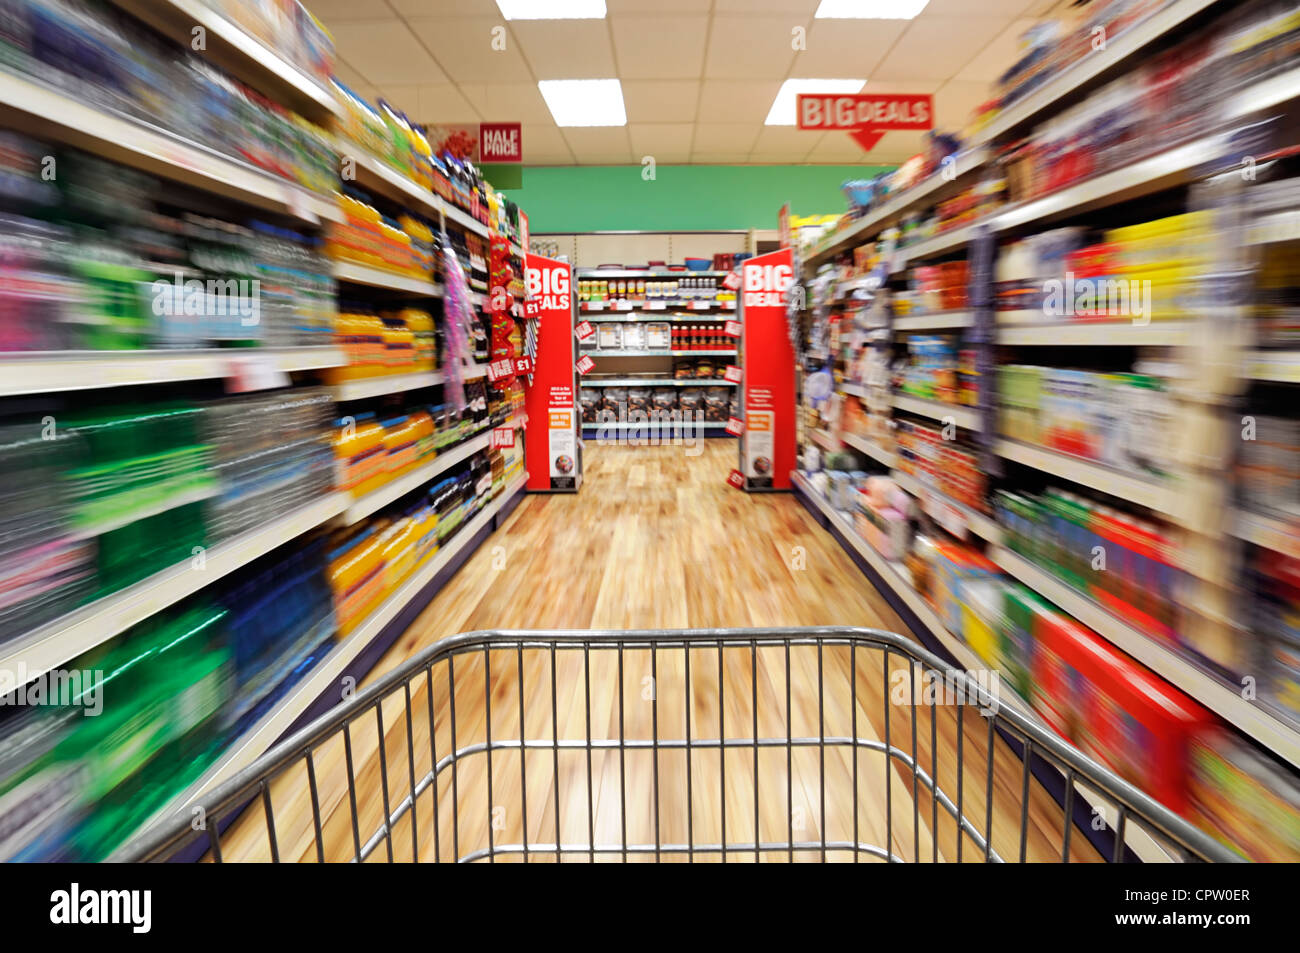 Shopping Trolley Speeding Down a Supermarket Aisle, UK. - Stock Image